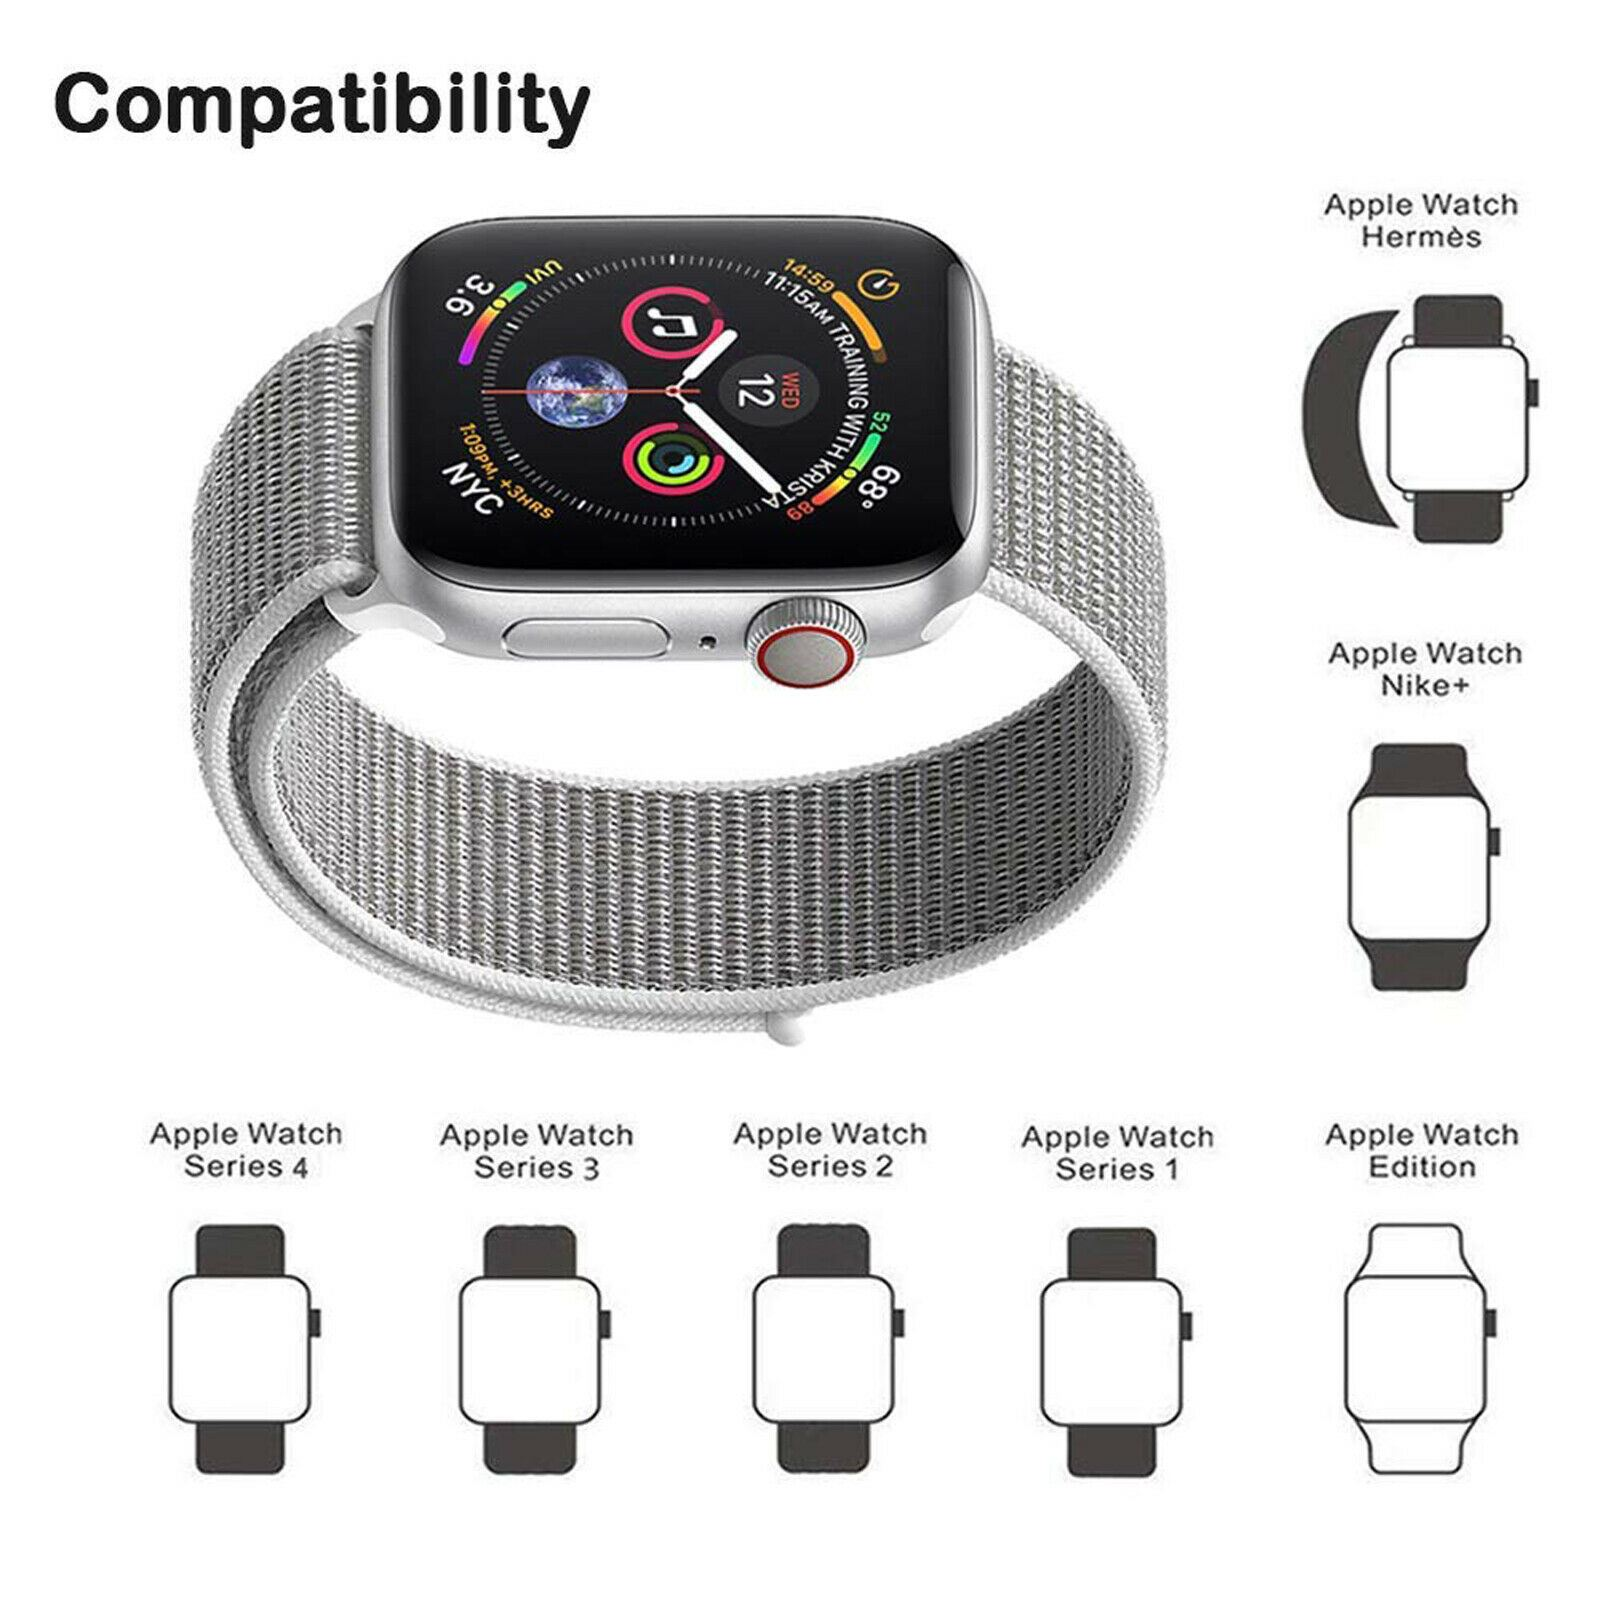 Band-Strap-For-Apple-Watch-Adjustable-Waterproof-Braided-Nylon-Material thumbnail 39